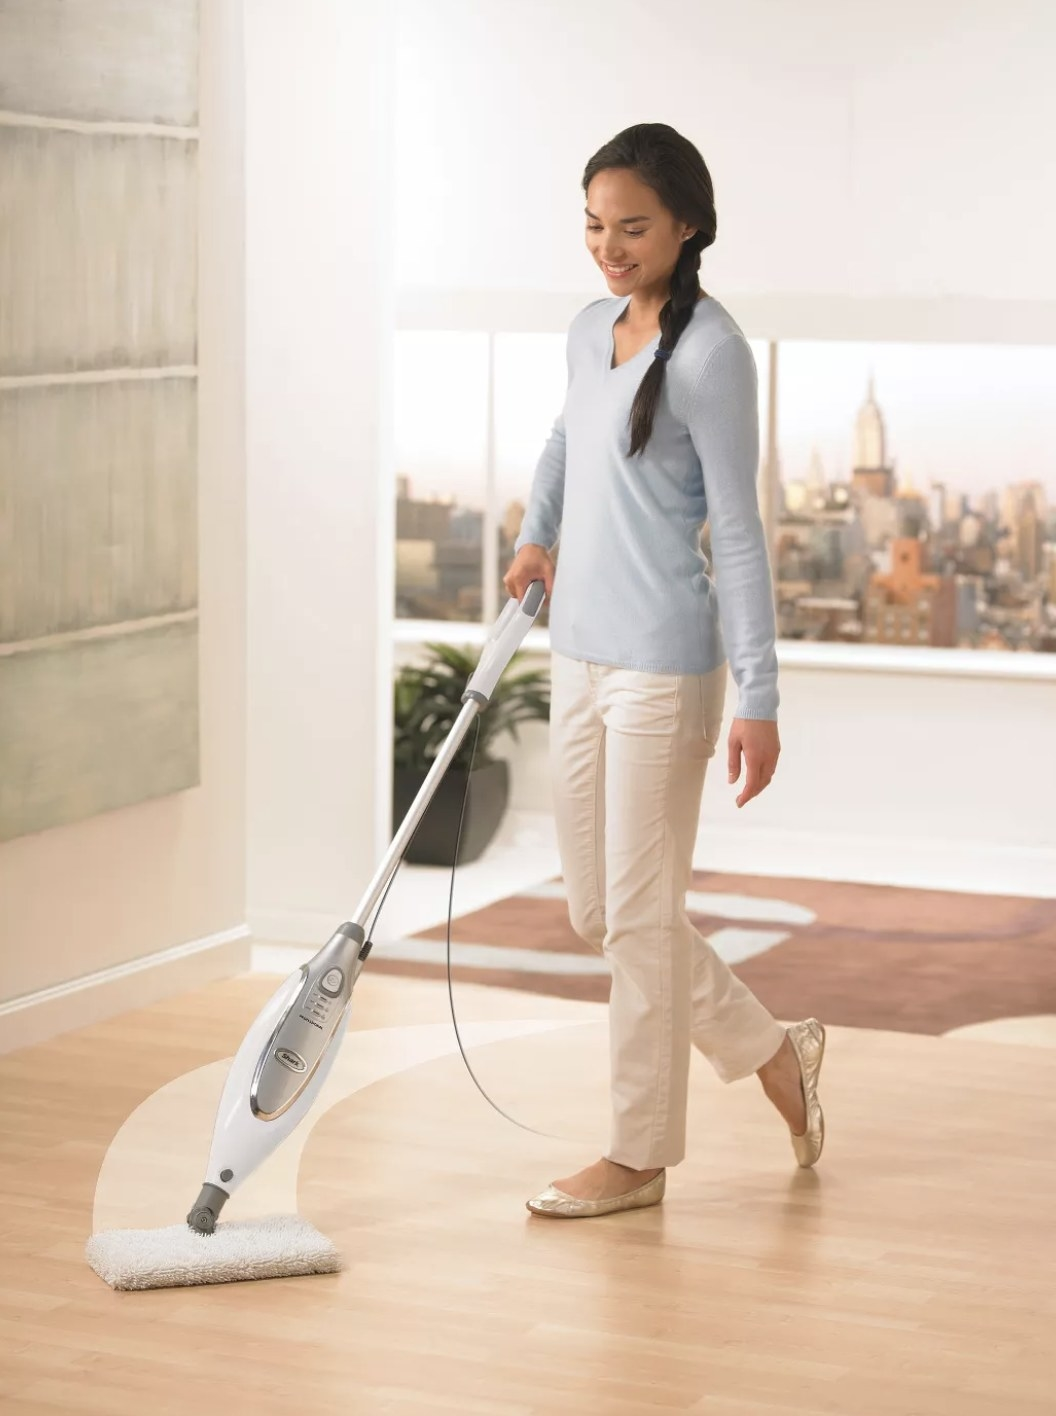 A model pushing a white steam mop across her wood floors